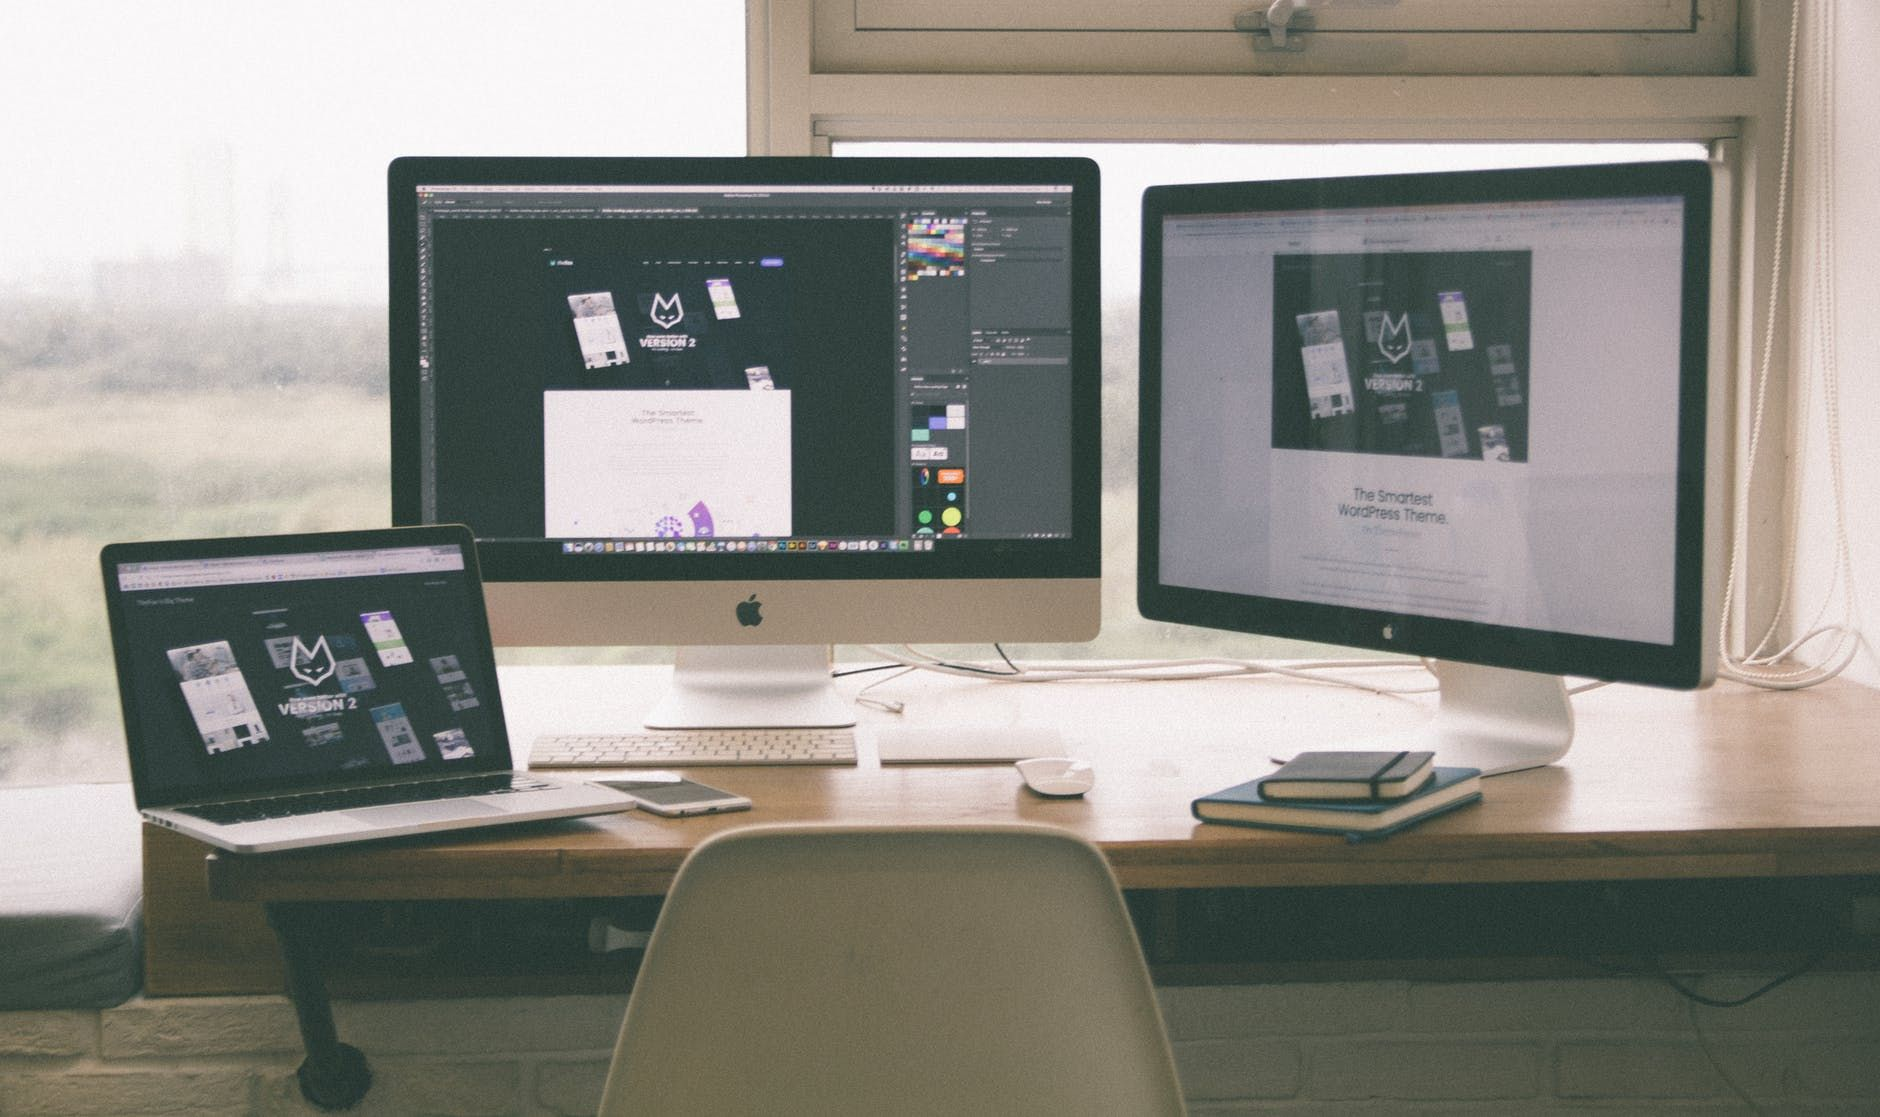 /9-must-know-ux-design-tips-for-developers-k8143109 feature image